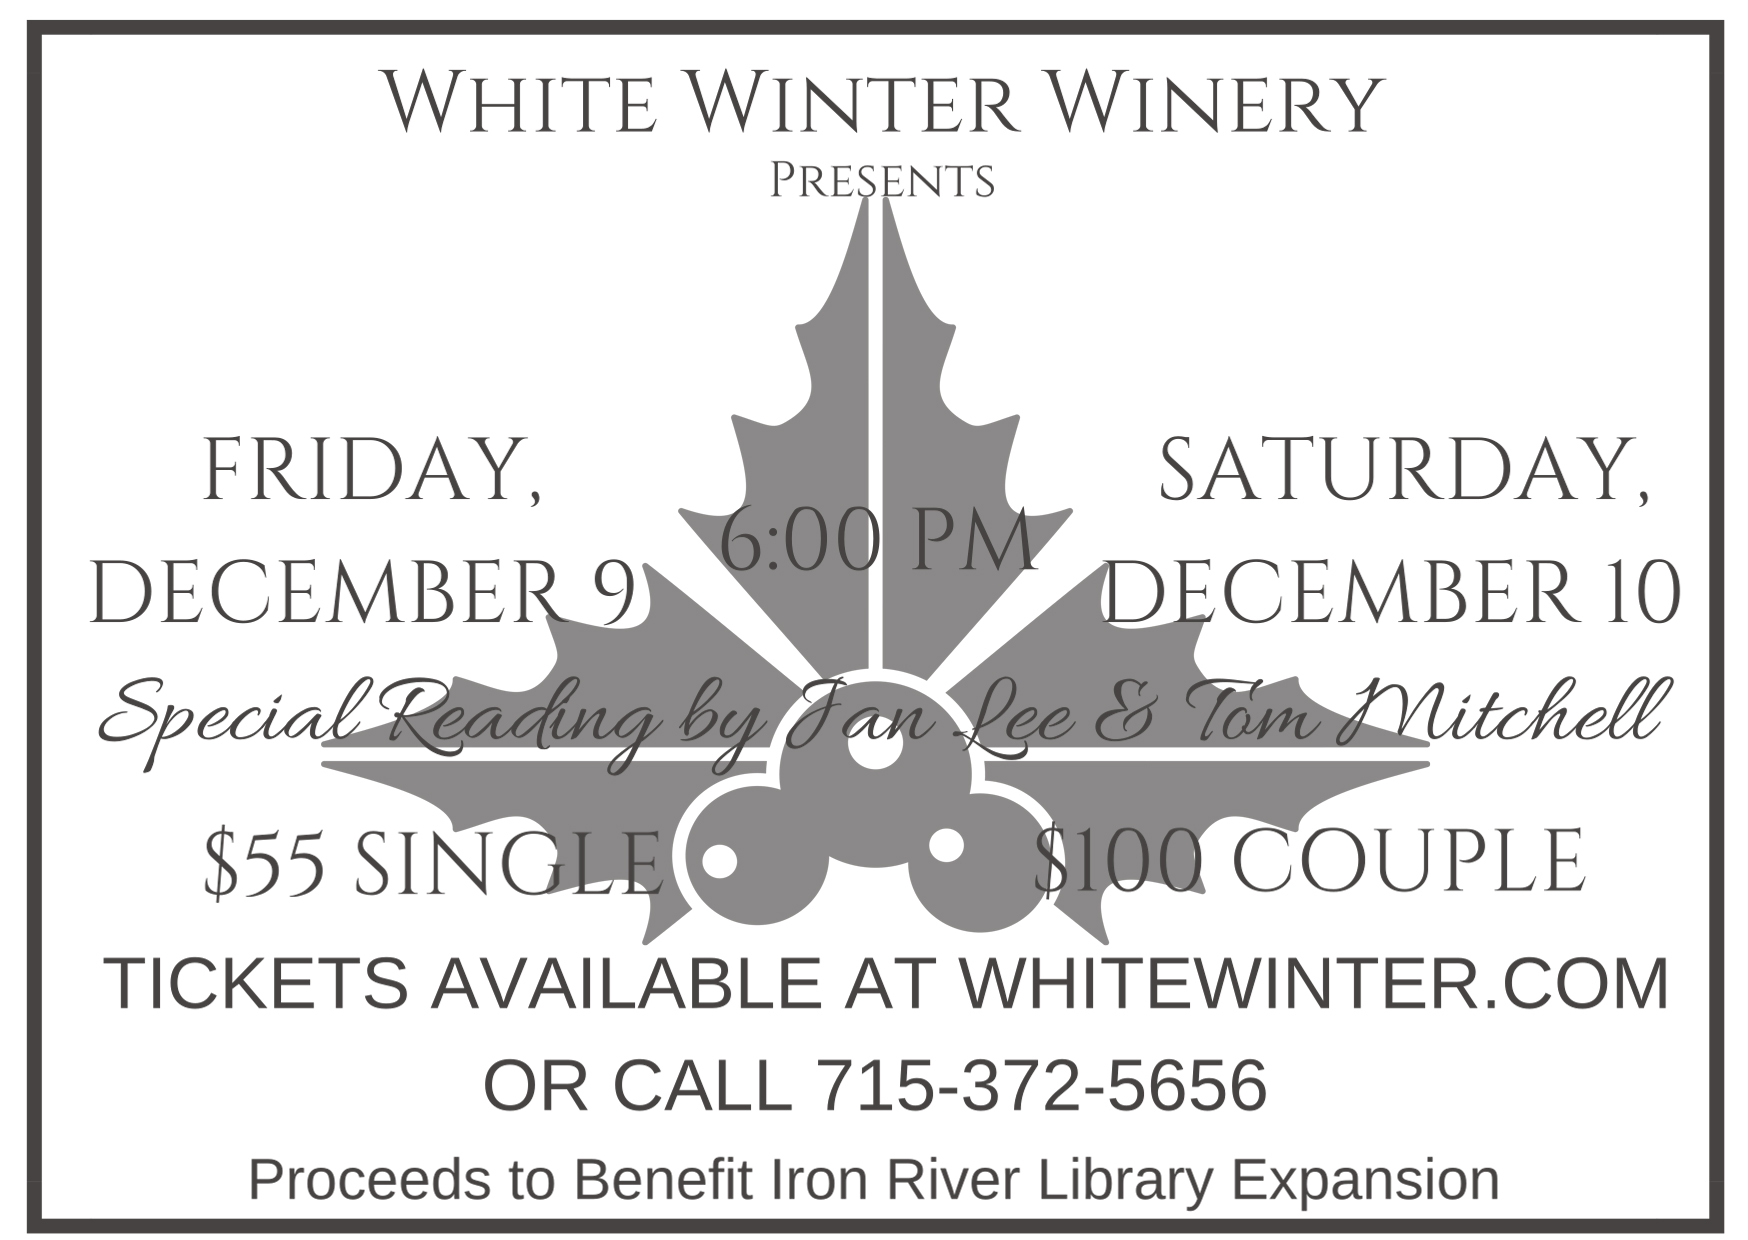 Family Owned White Winter Winery Specializes in Mead